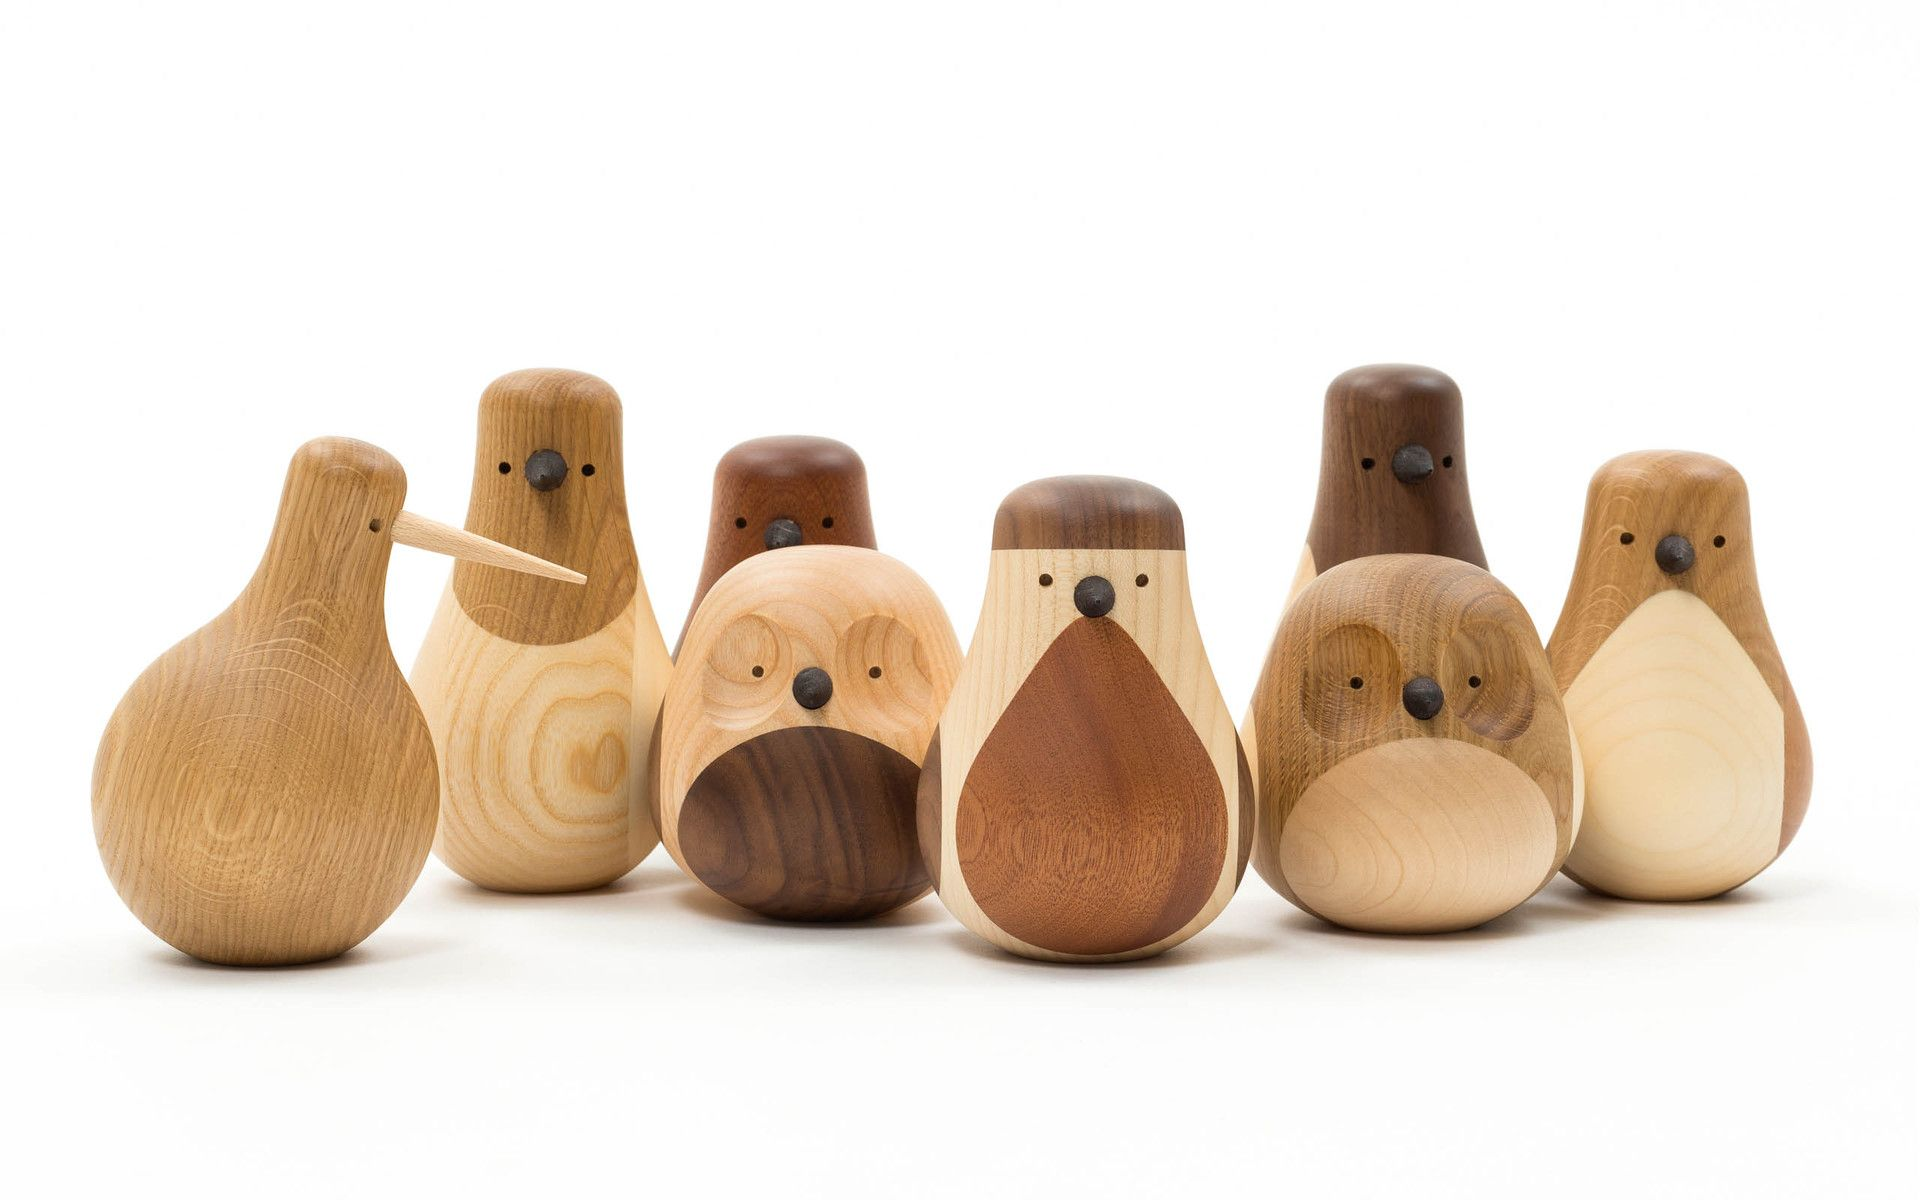 Wooden animals ornaments - Beller Uses Reclaimed Wood From Old Furniture In Norway To Make These Birds